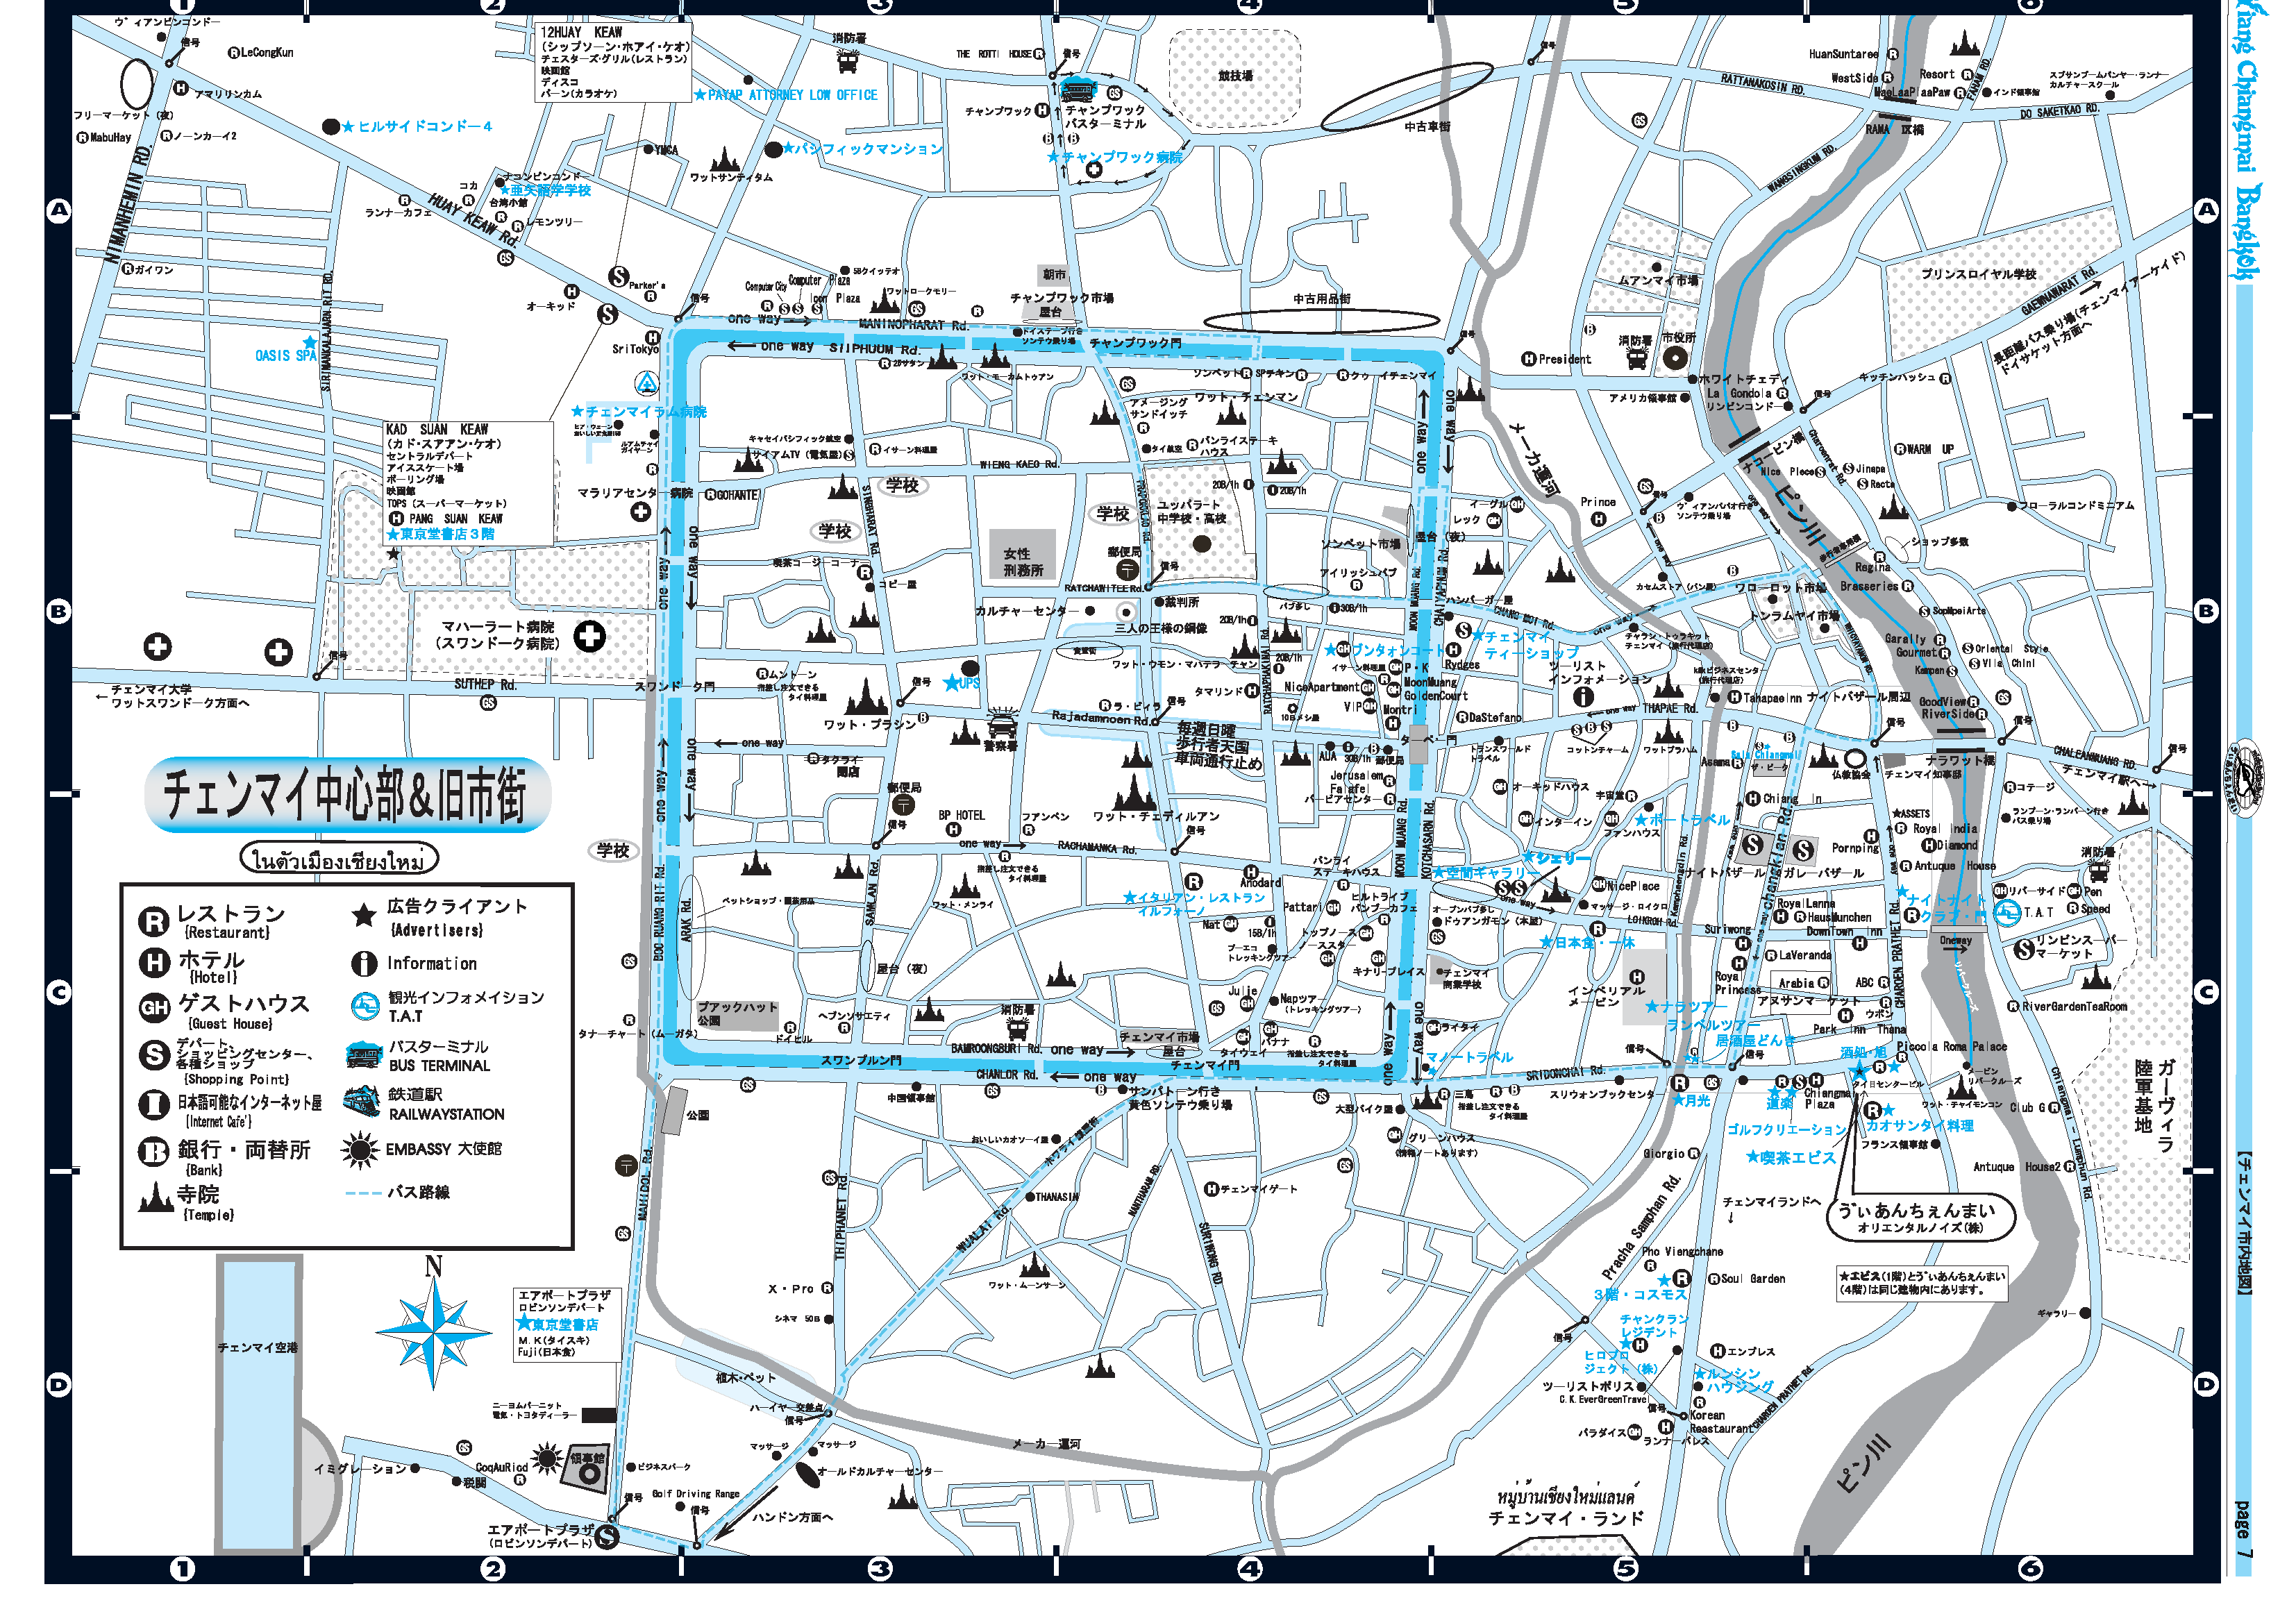 Chiang Mai City Tourist Map Japanese Chiang Mai City Thailand